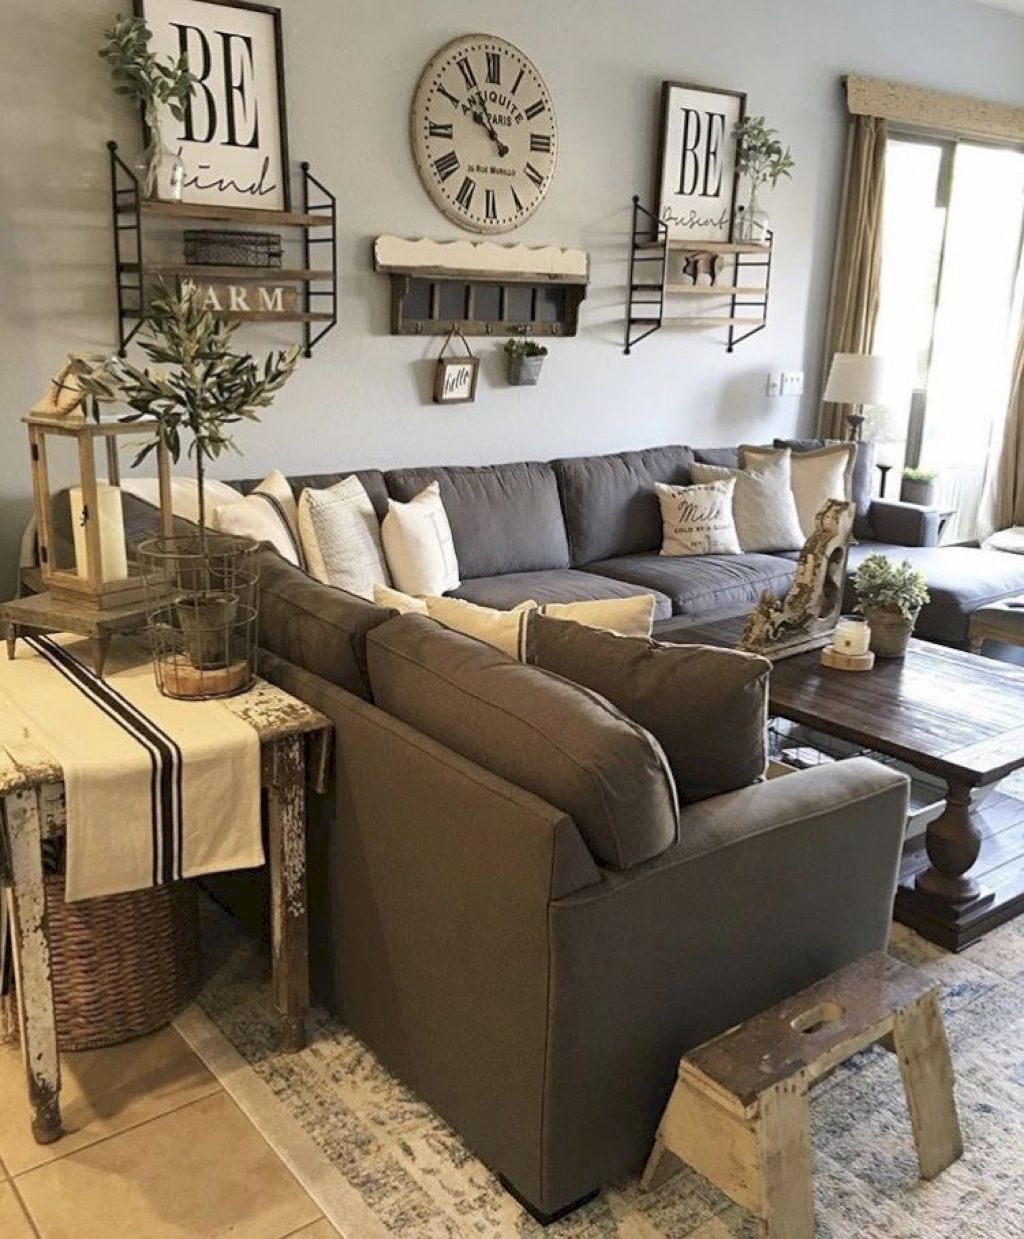 Pin by Gabriela L on decor in 2018